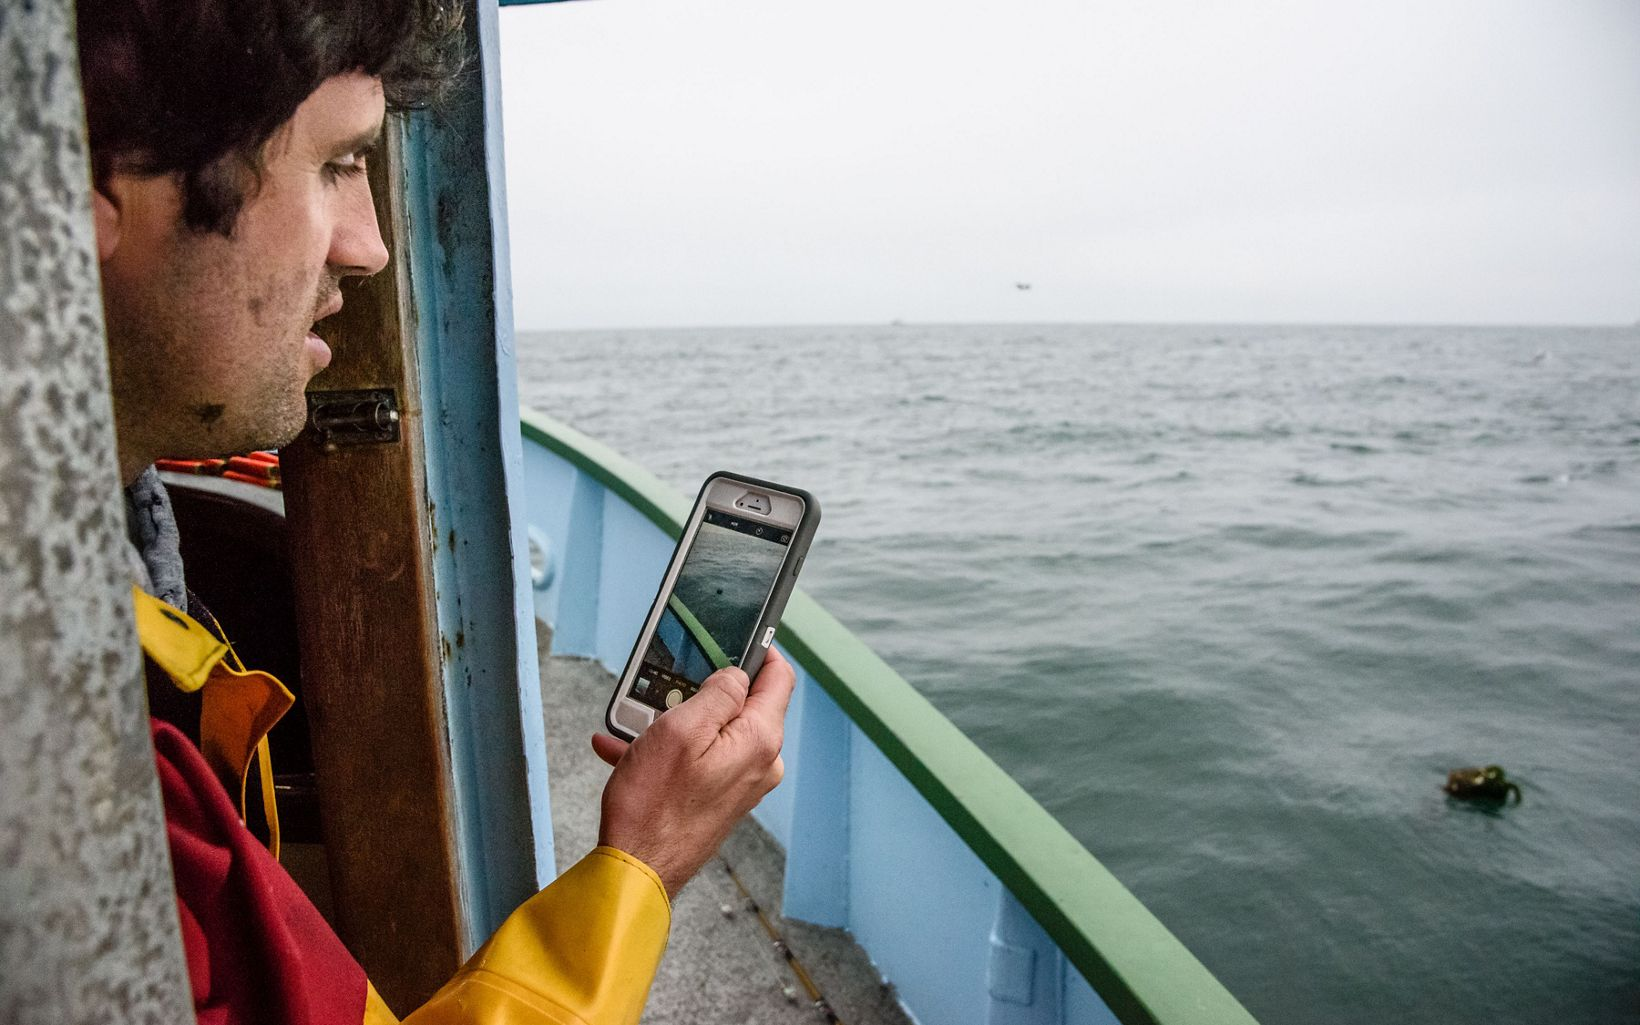 The Nature Conservancy developed a software tool that allows fishermen to use their smartphones to record the location of lost gear they find.